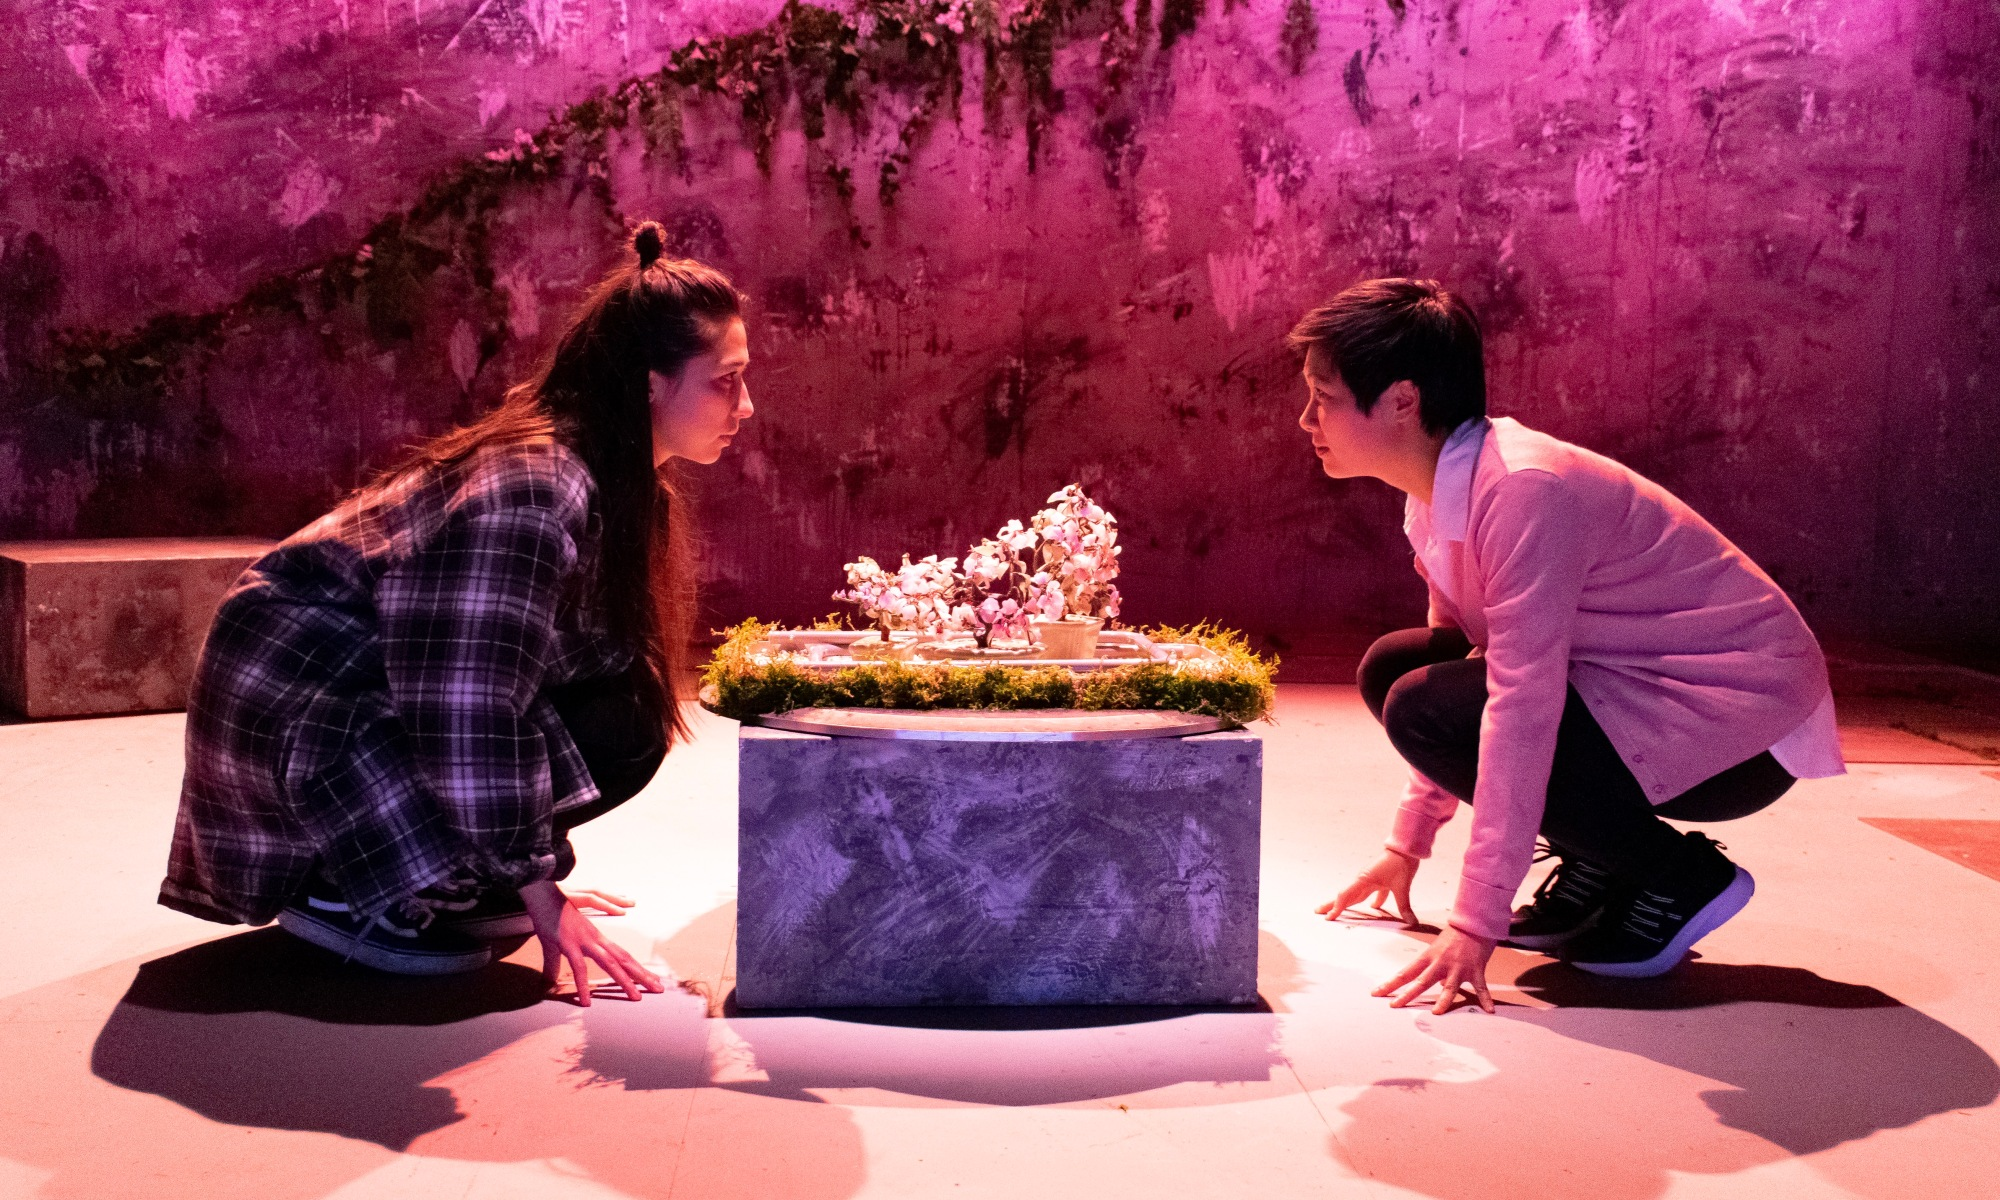 Two women crouch either side of a stone table, which has a pink flower and grass on top of it.